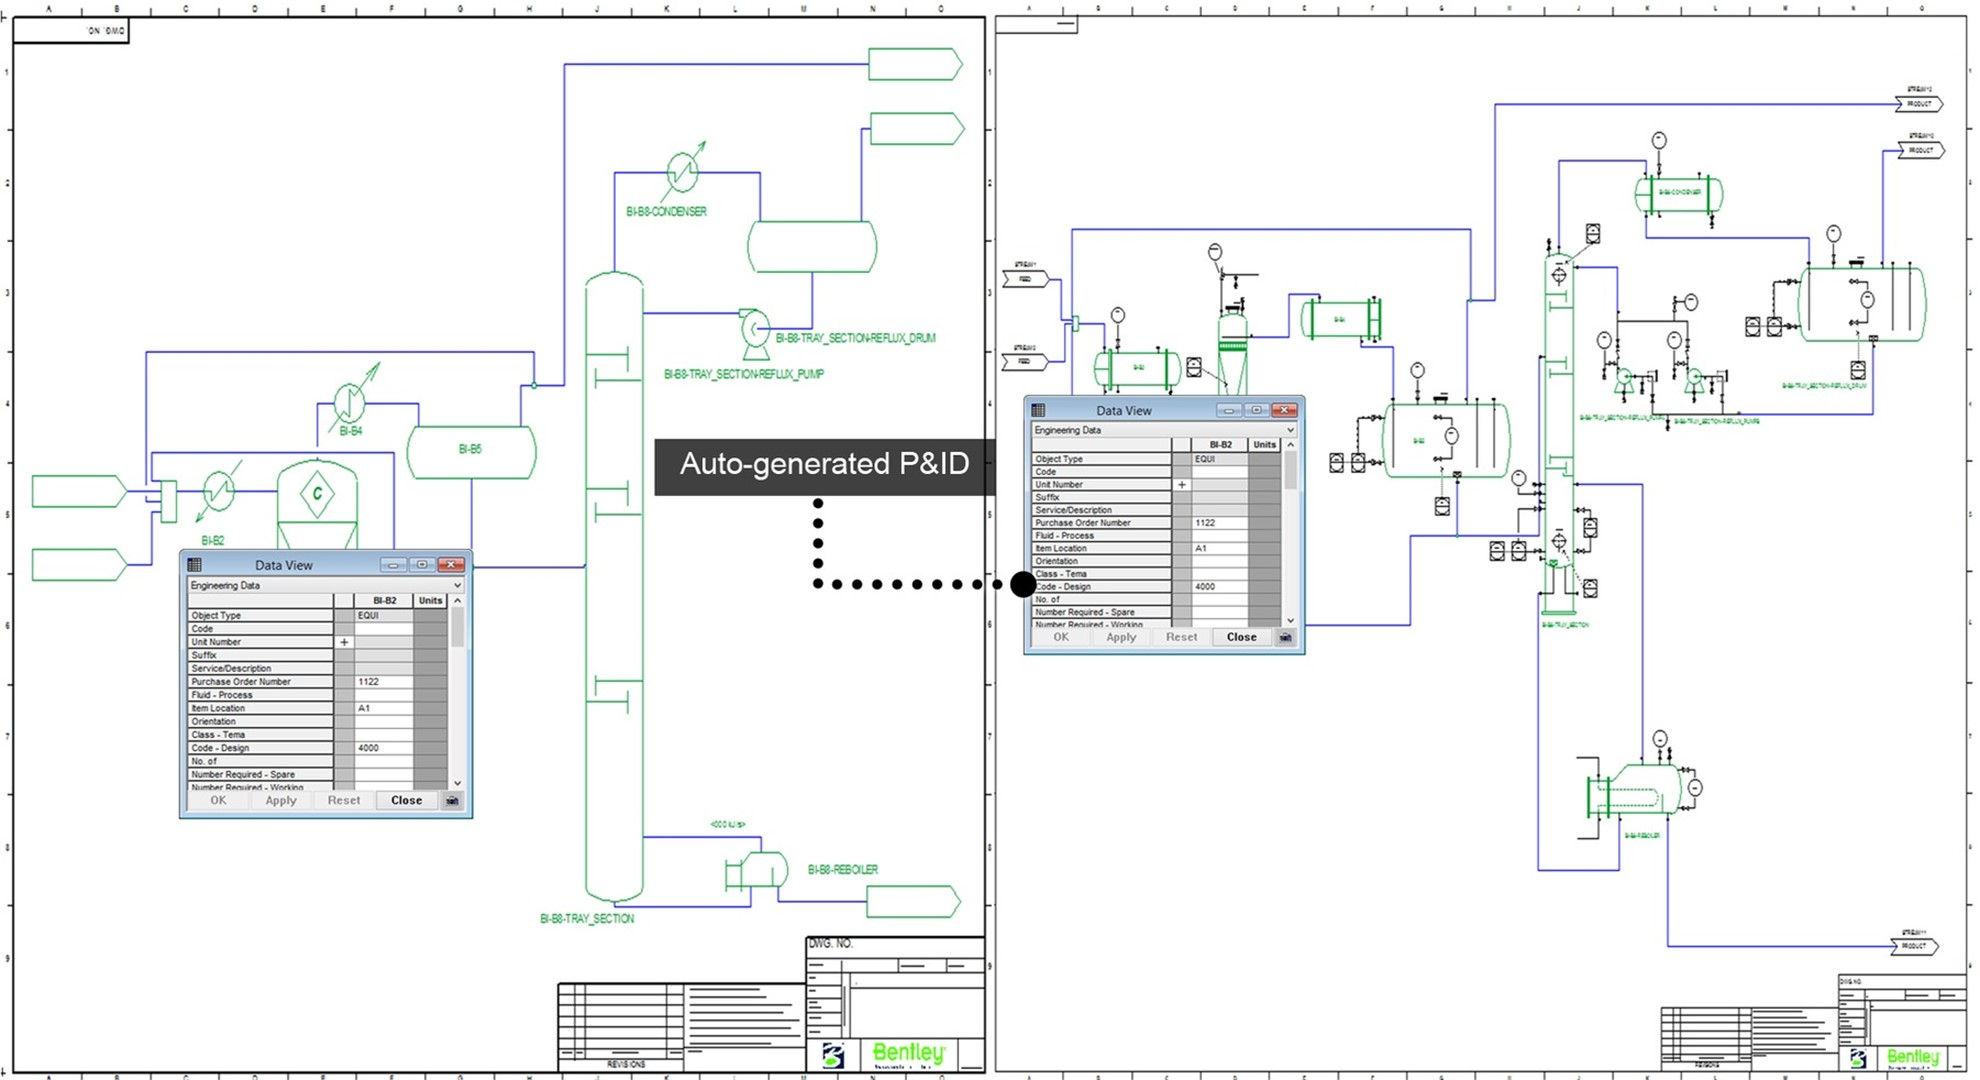 2d Conceptual Plant Design Software Bentley Axsysprocess Process Flow Diagram Vs Piping And Instrumentation This Is A Modal Window Can Be Closed By Pressing The Escape Key Or Activating Close Button